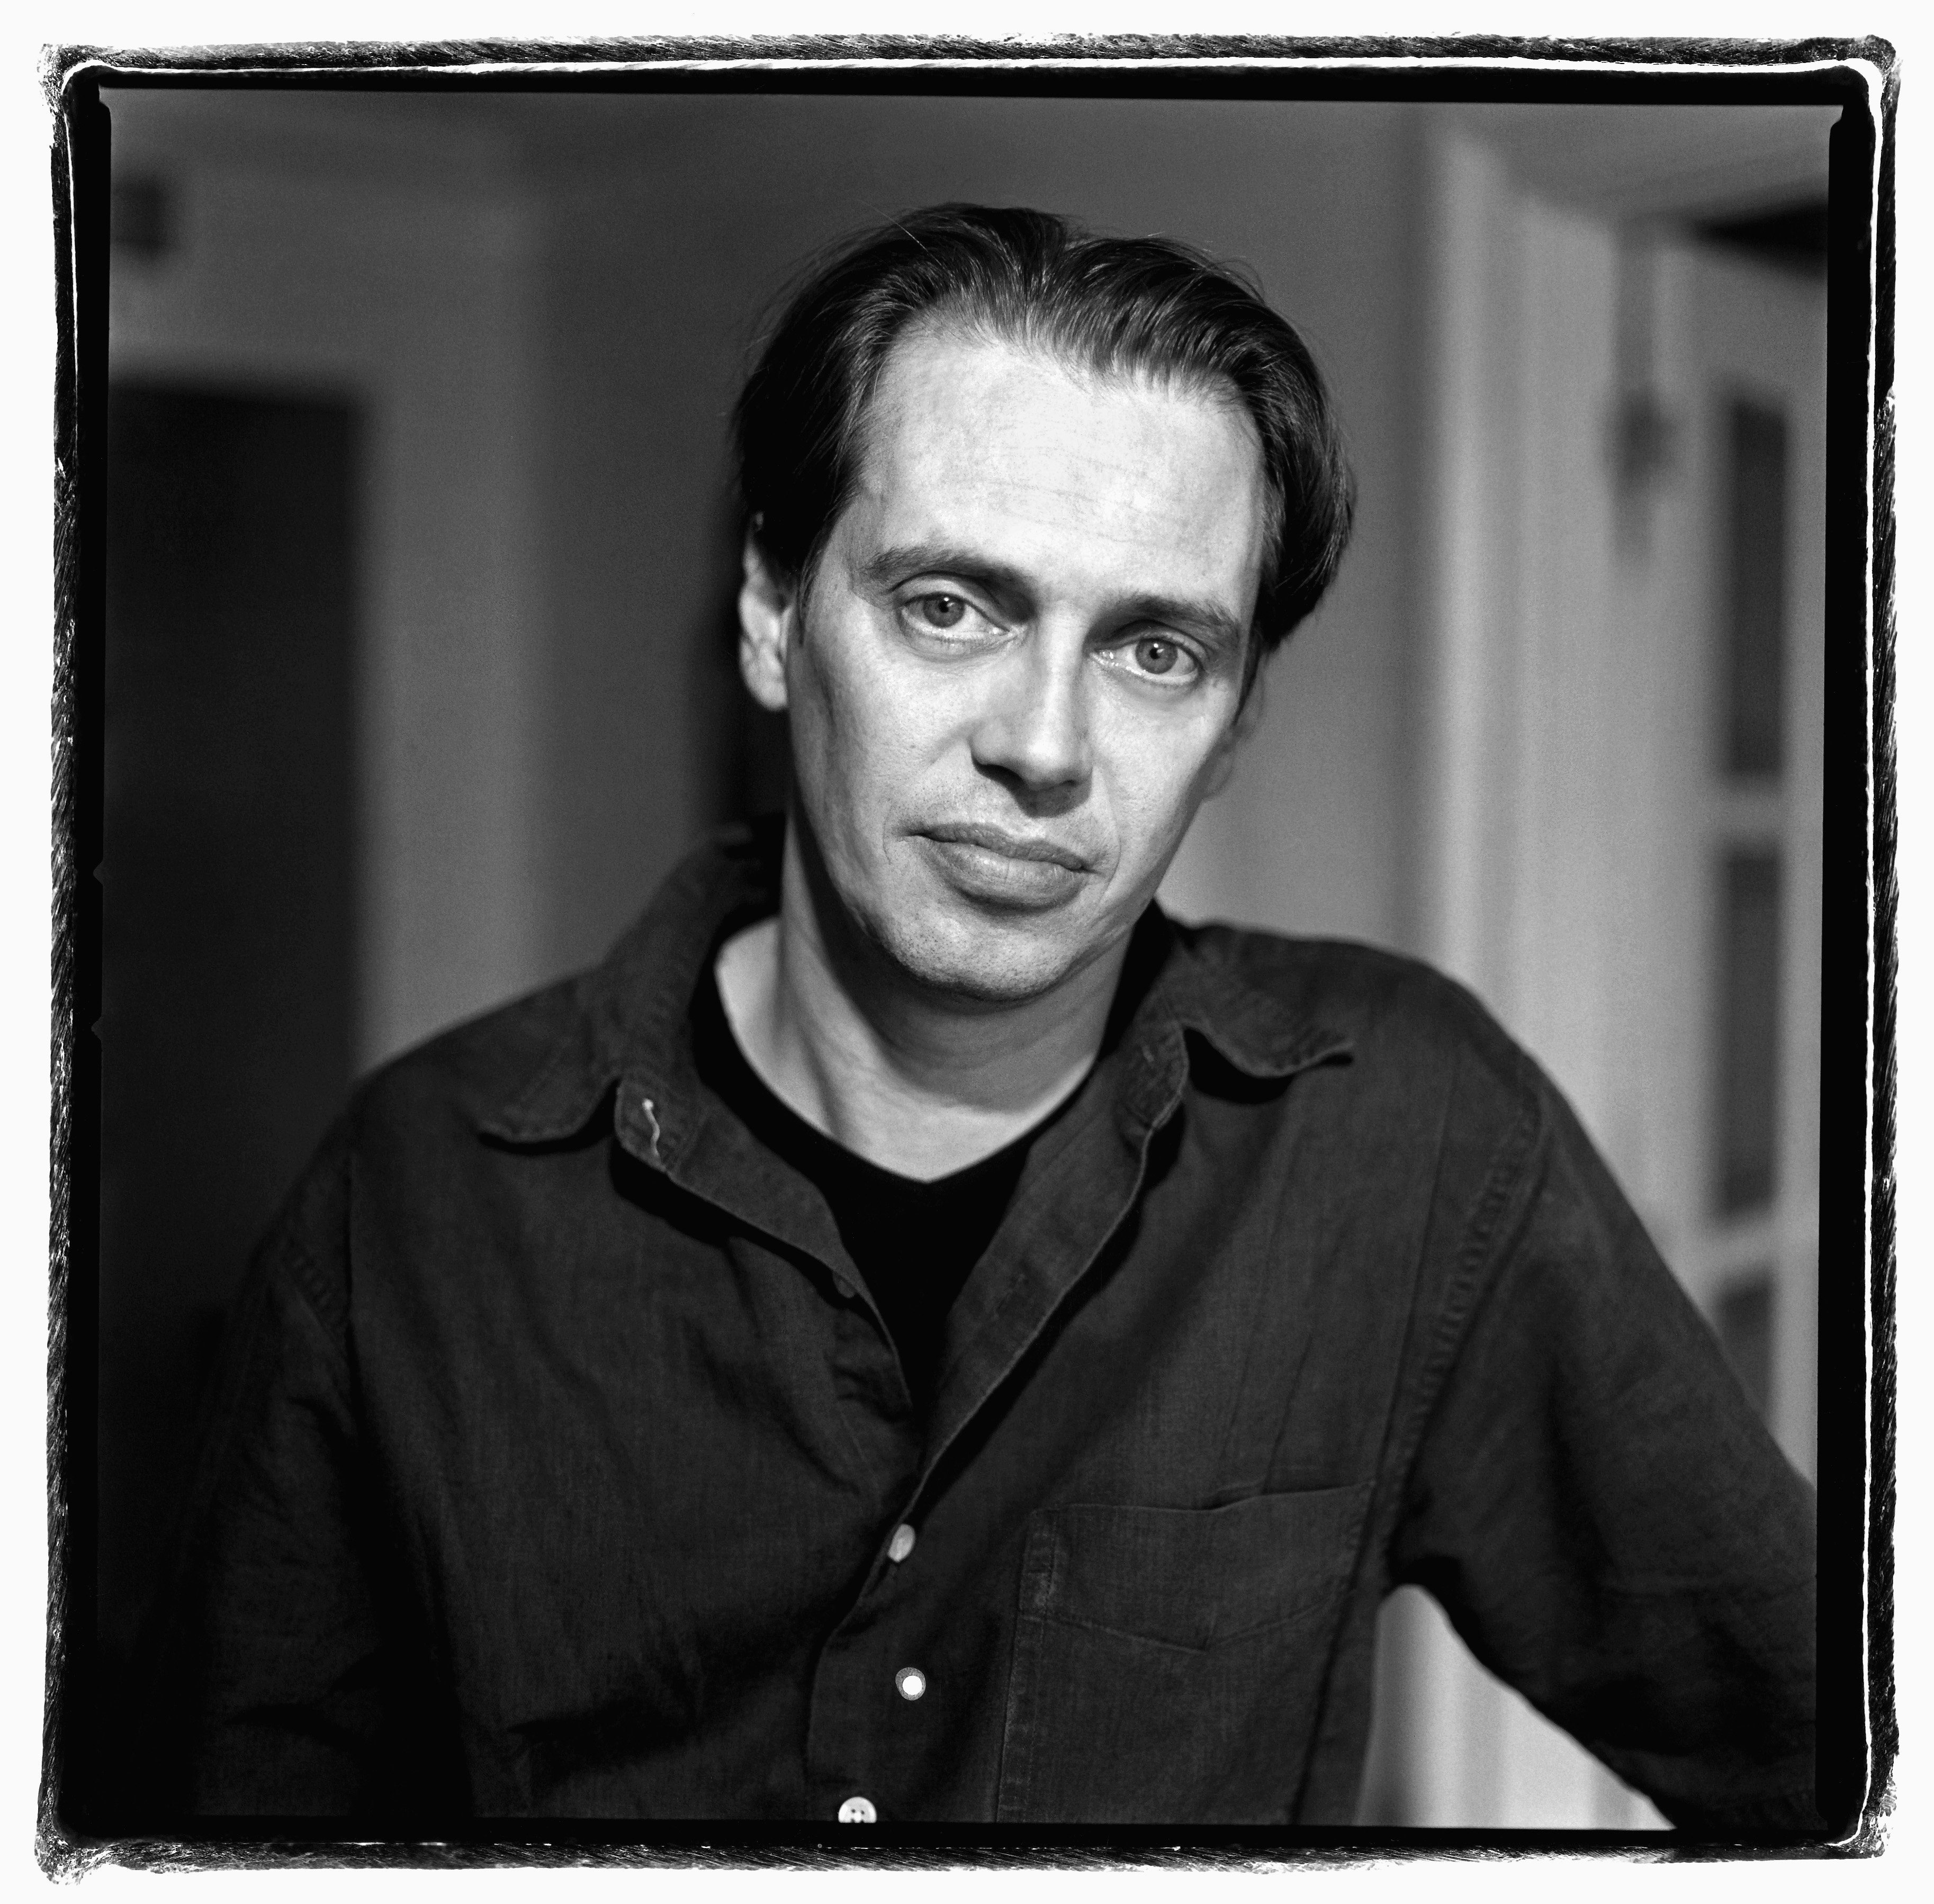 Steve Buscemi during Steve Buscemi, Self Assignment, January 1, 2002 at Steve Buscemi by George Pimentel in Toronto, Ontario, Canada | Photo: GettyImages